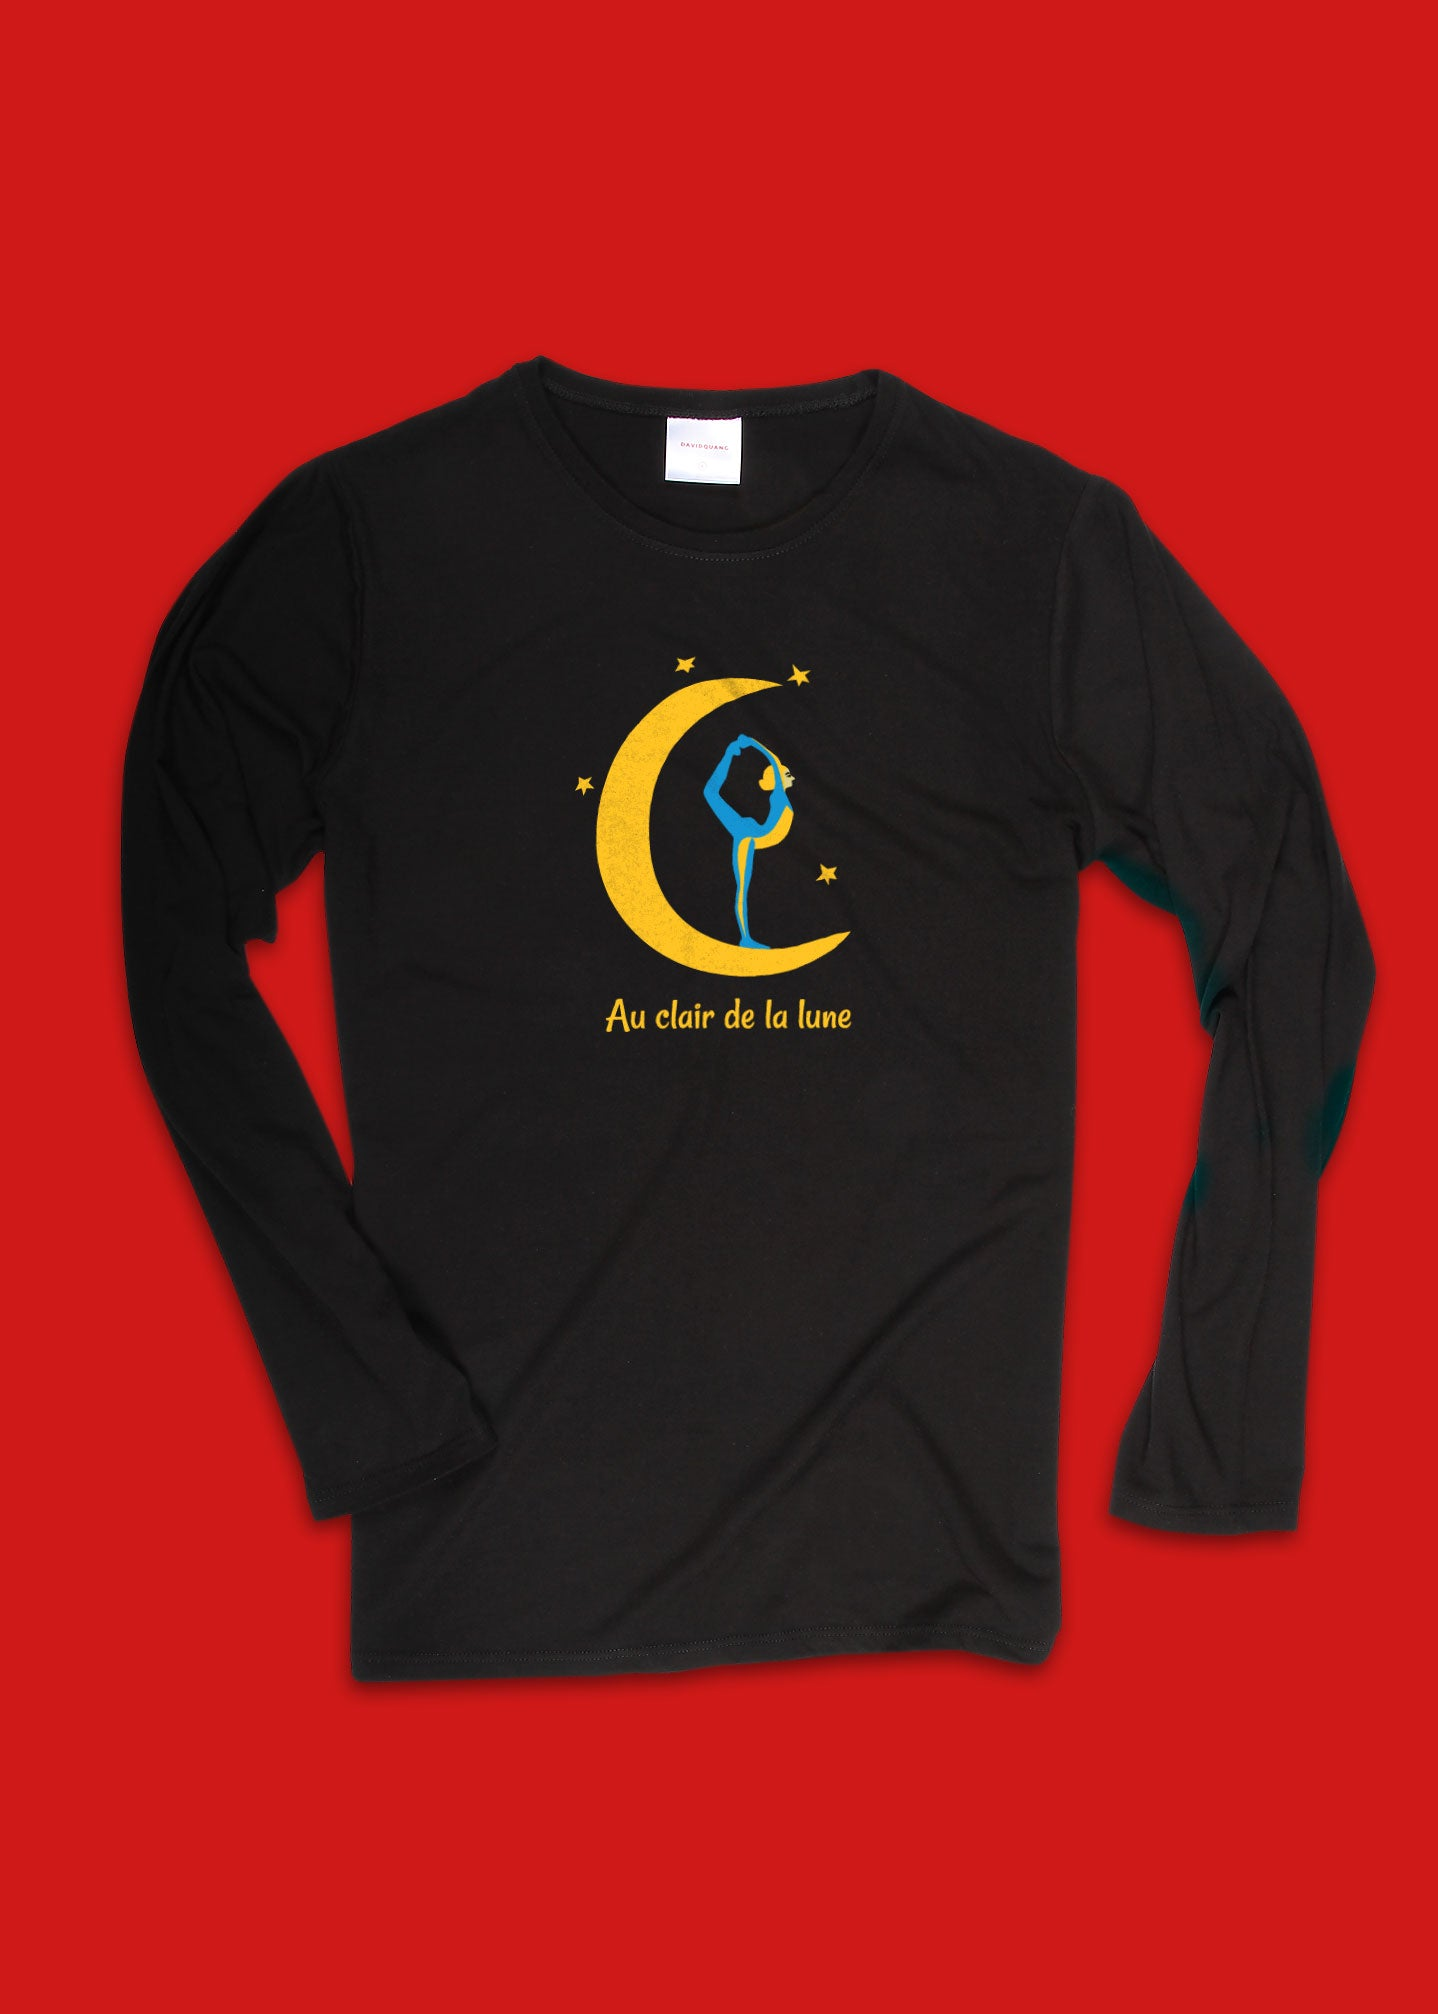 Women's Long Sleeve T-Shirt with Moon Yoga Print